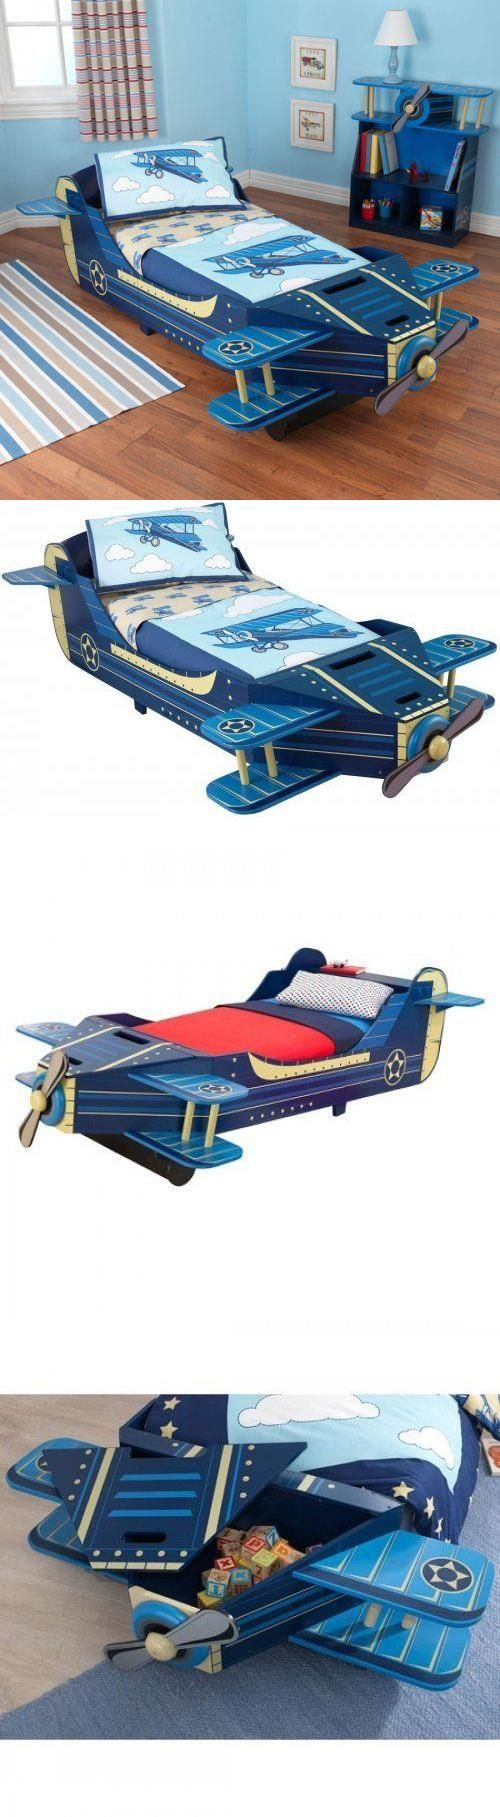 Kids at Home: Airplane Convertible Toddler Bed Blue Kids Bedroom Furniture Propeller Spins BUY IT NOW ONLY: $198.99 #priceabateKidsatHome OR #priceabate